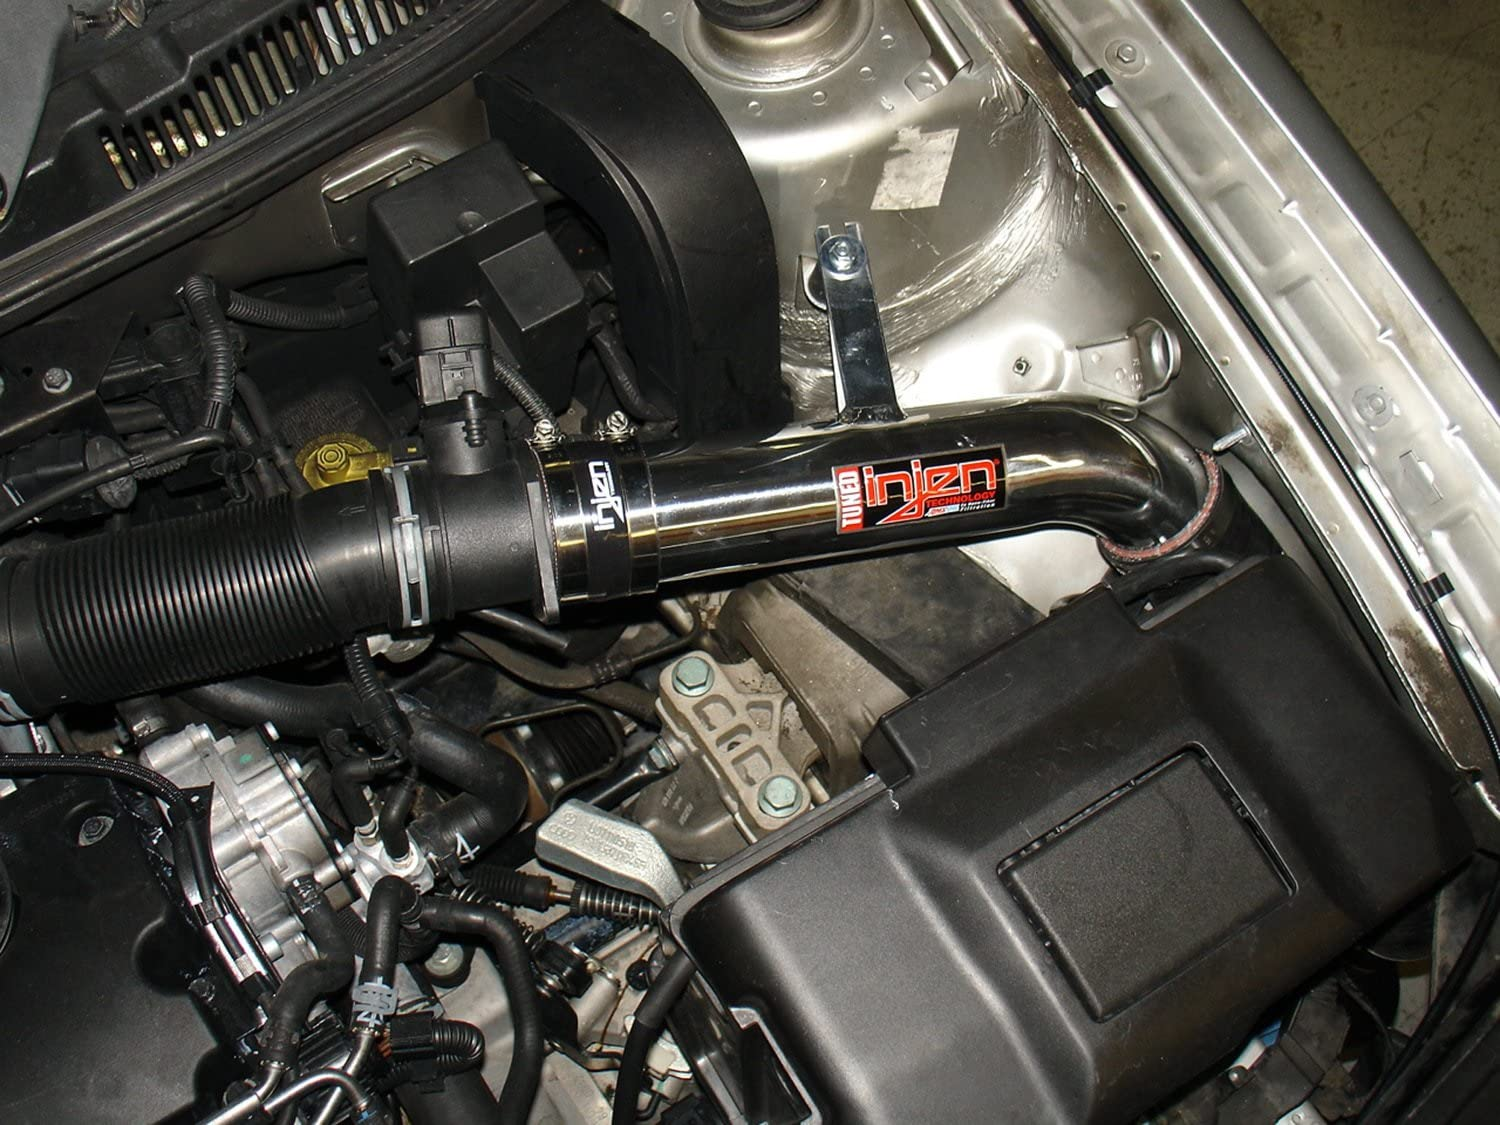 Air Fusion and Web Nano-Fiber Dry Filter Injen SP1900P Polished Finish Tuned Cold Air Intake System with MR Technology